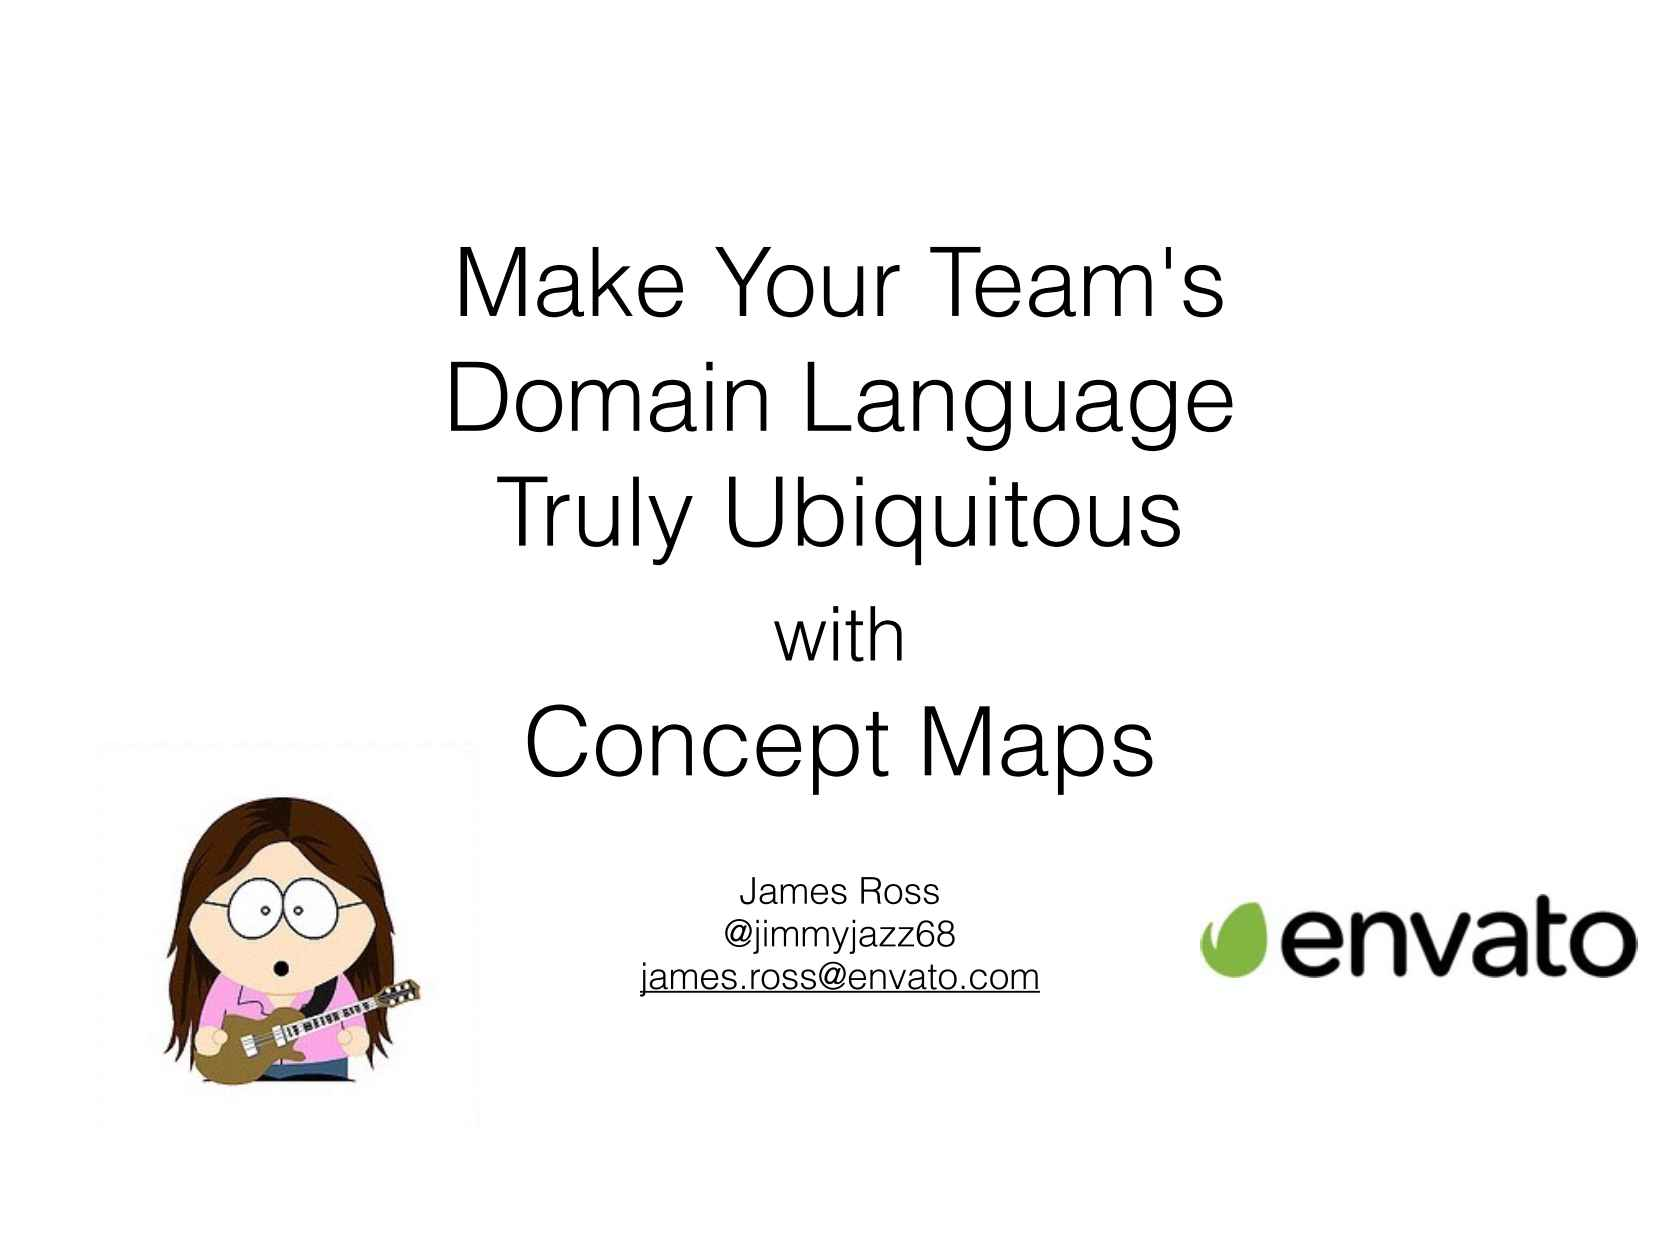 How To Build A Concept Map.Make Your Team S Domain Language Truly Ubiquitous With Concept Maps